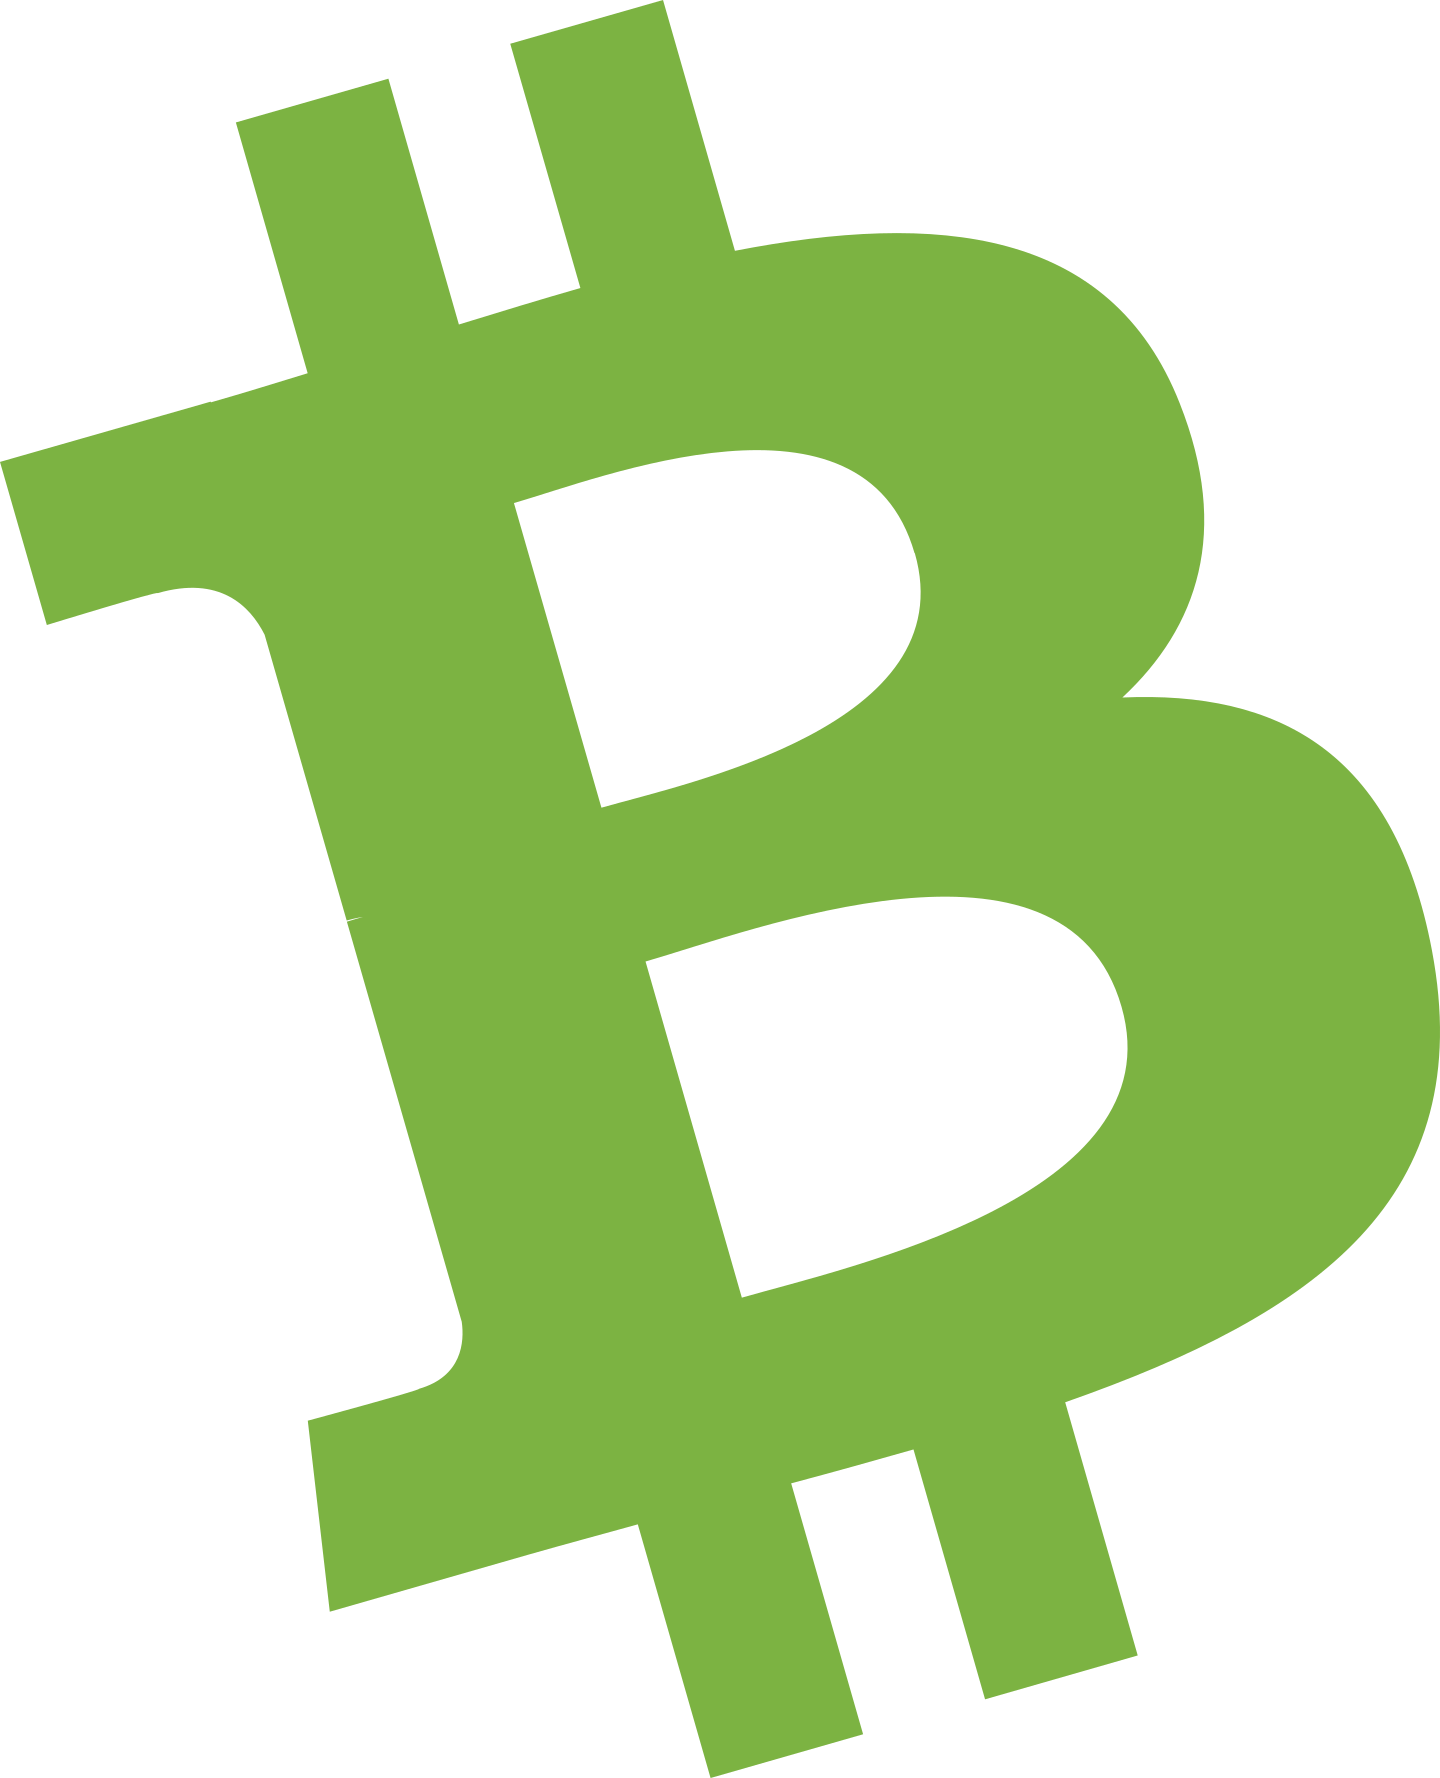 bitcoin cash logo 5 - Bitcoin Cash Logo